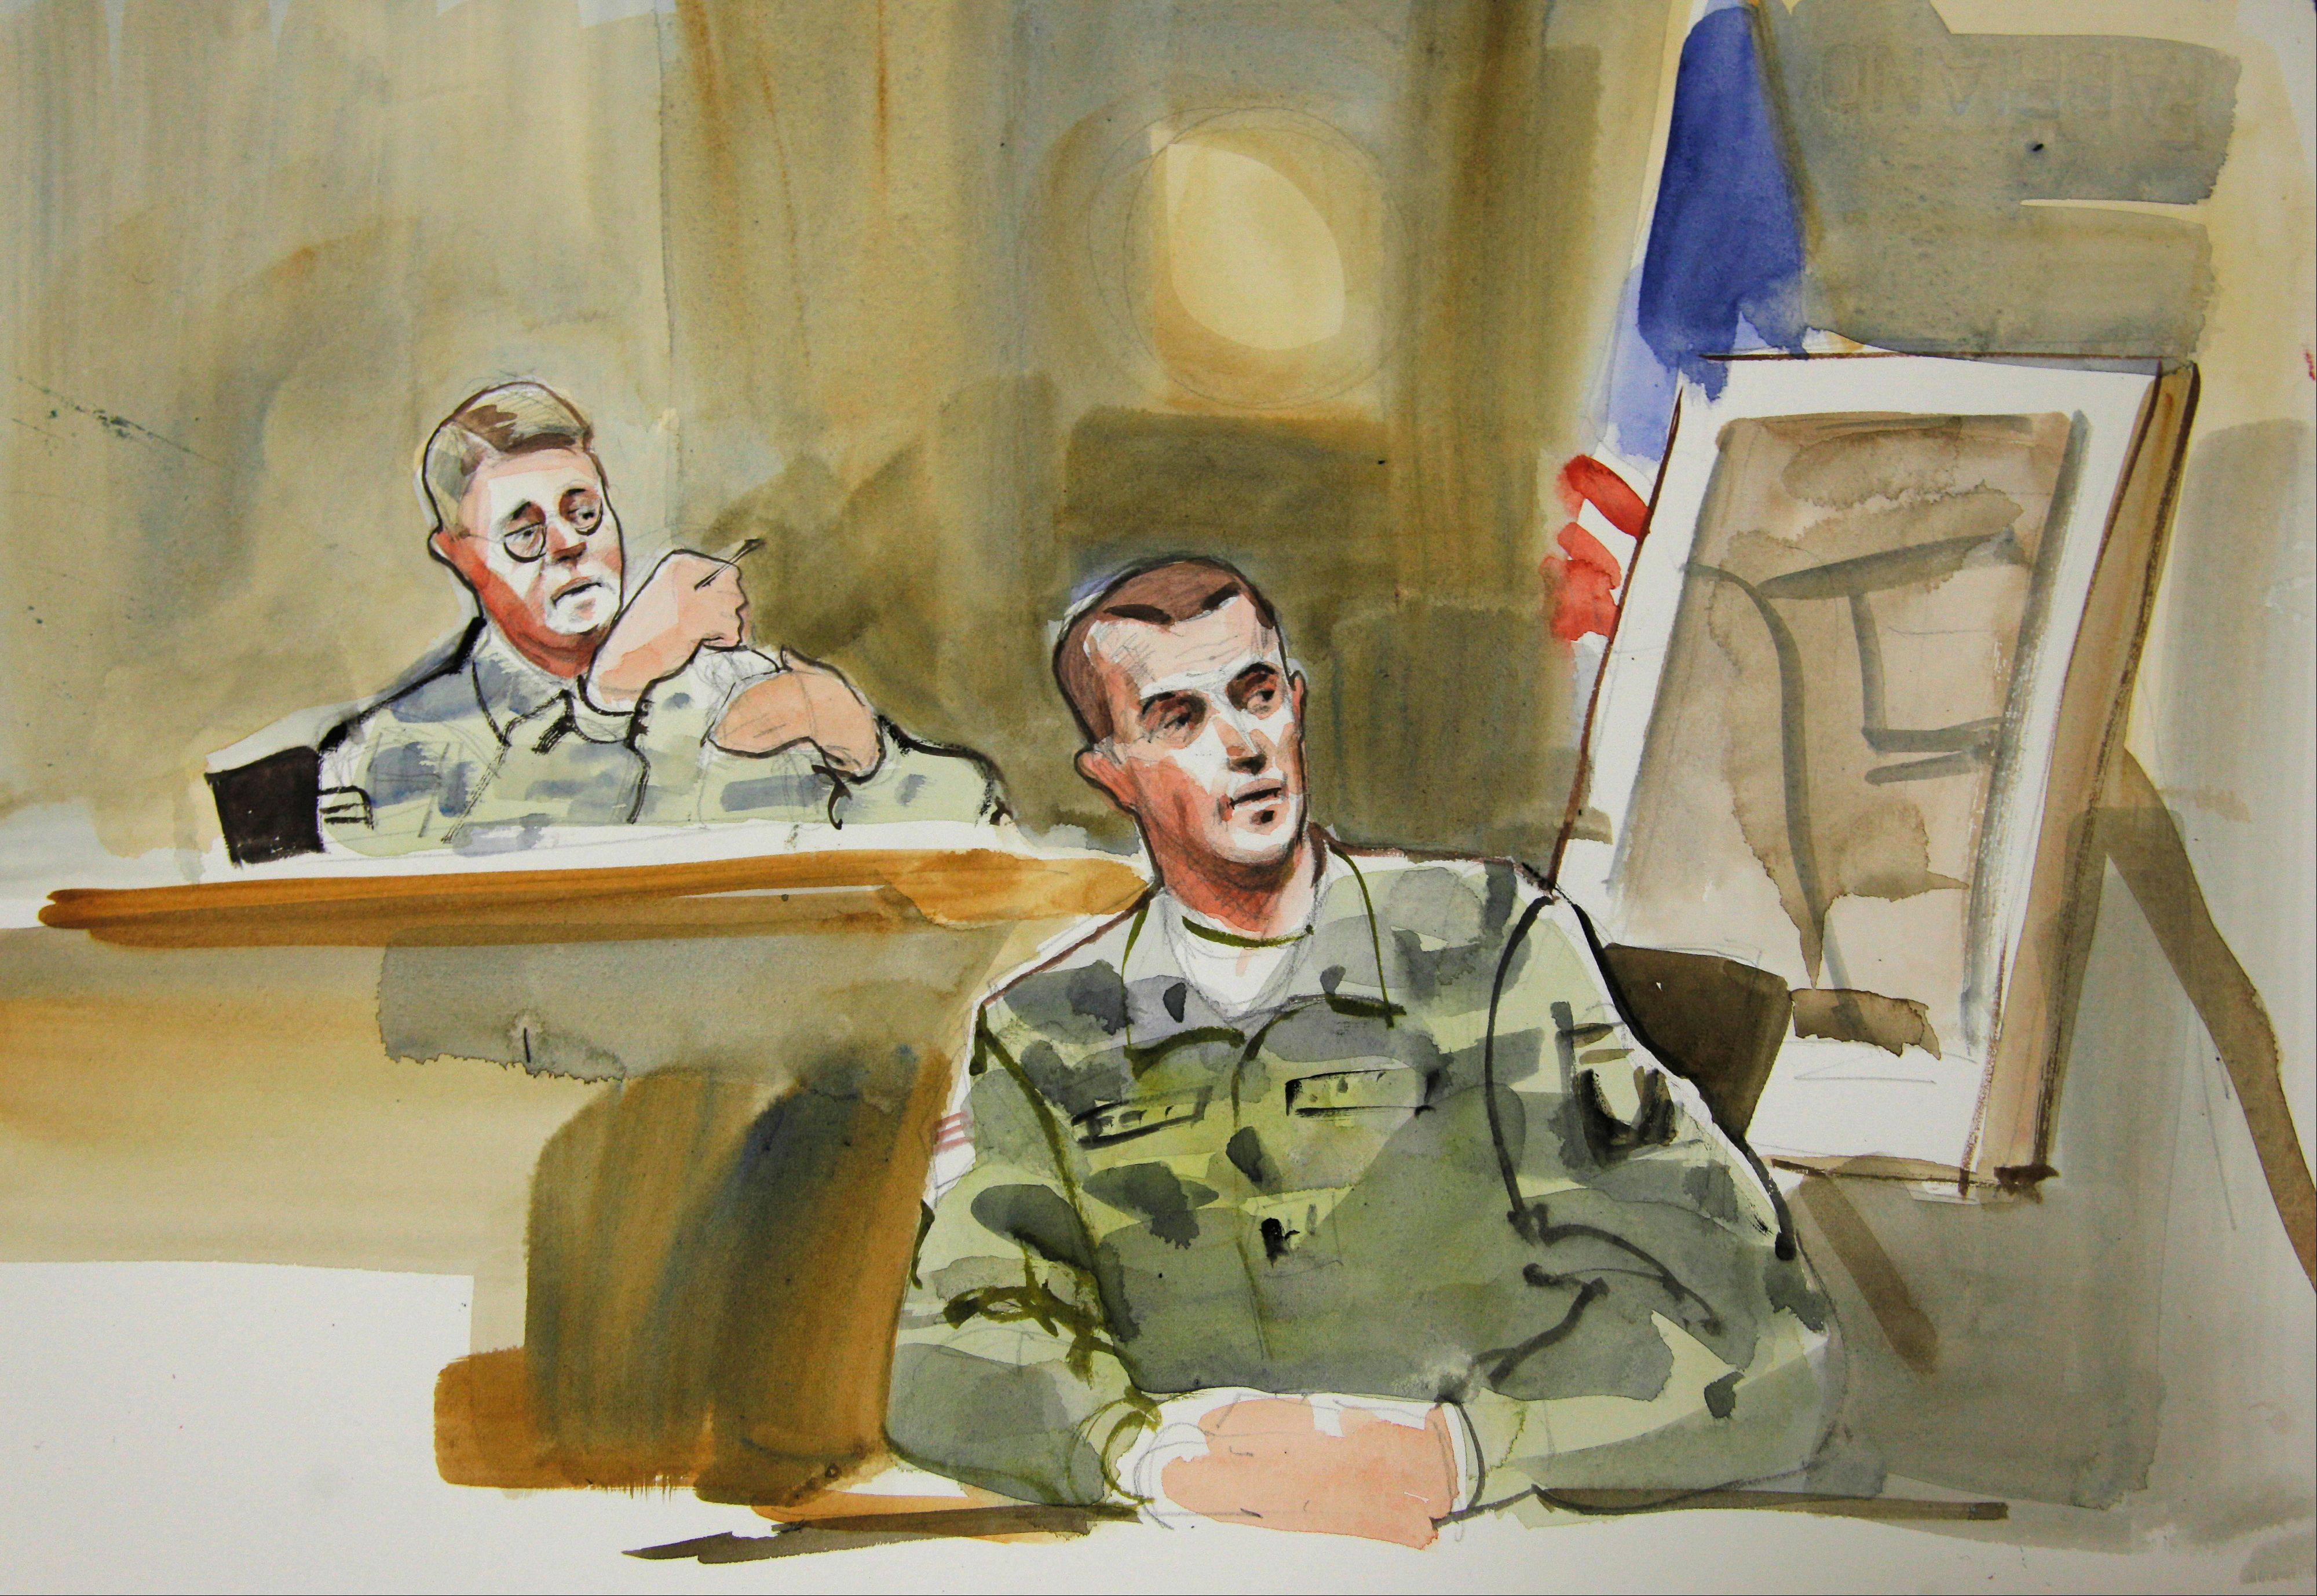 In this courtroom sketch, Capt. Daniel Fields, right, a prosecution witness in the military preliminary hearing of U.S. Army Staff Sgt. Robert Bales, testifies in a military courtroom at Joint Base Lewis McChord in Washington state, Monday, Nov. 5, 2012. At upper left is Investigating Officer Col. Lee Deneke.